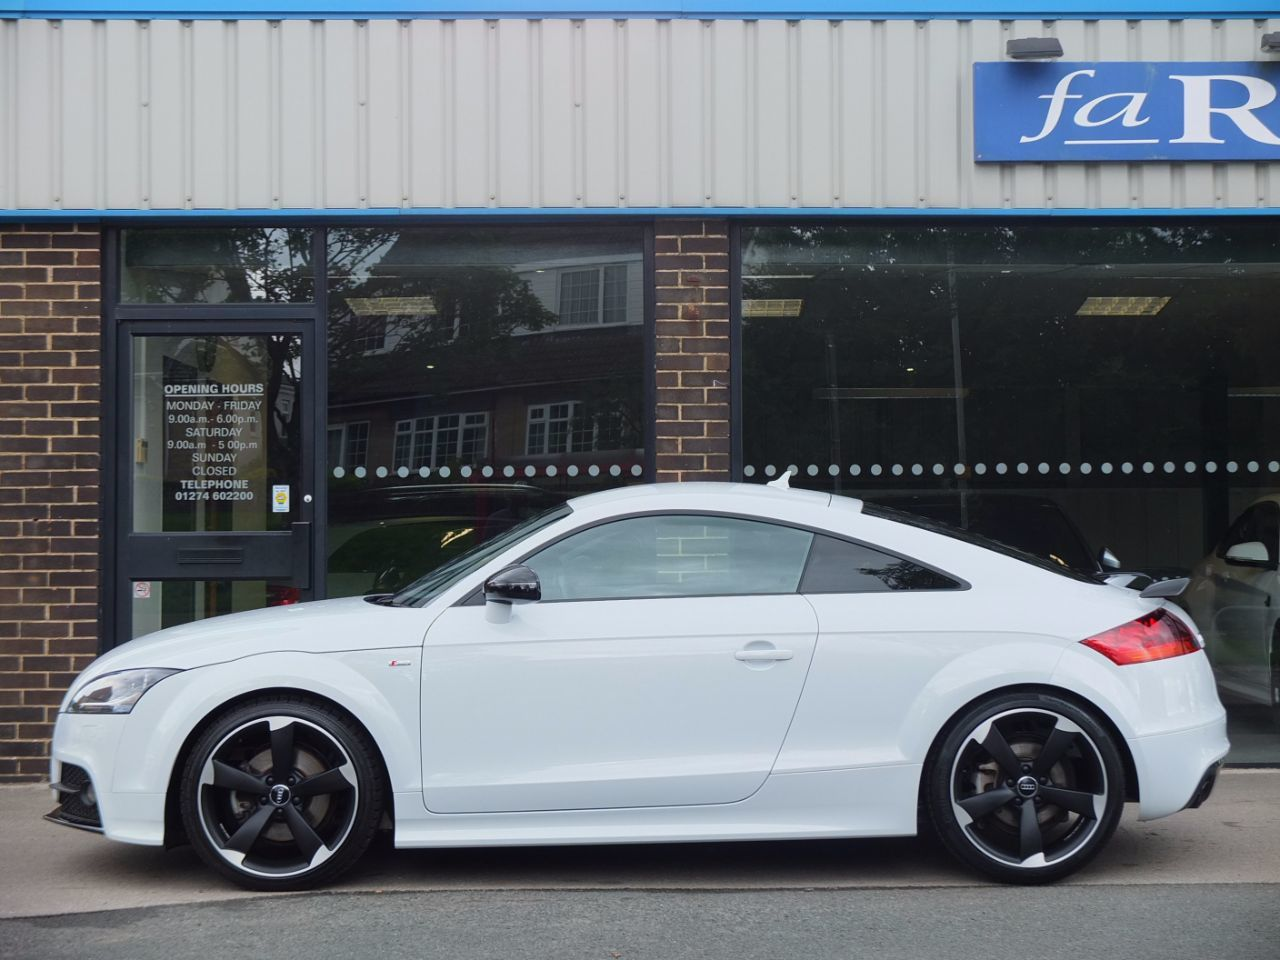 Audi TT 2.0T FSI quattro Black Edition S tronic Amplified Pack Coupe Petrol Glacier White Metallic